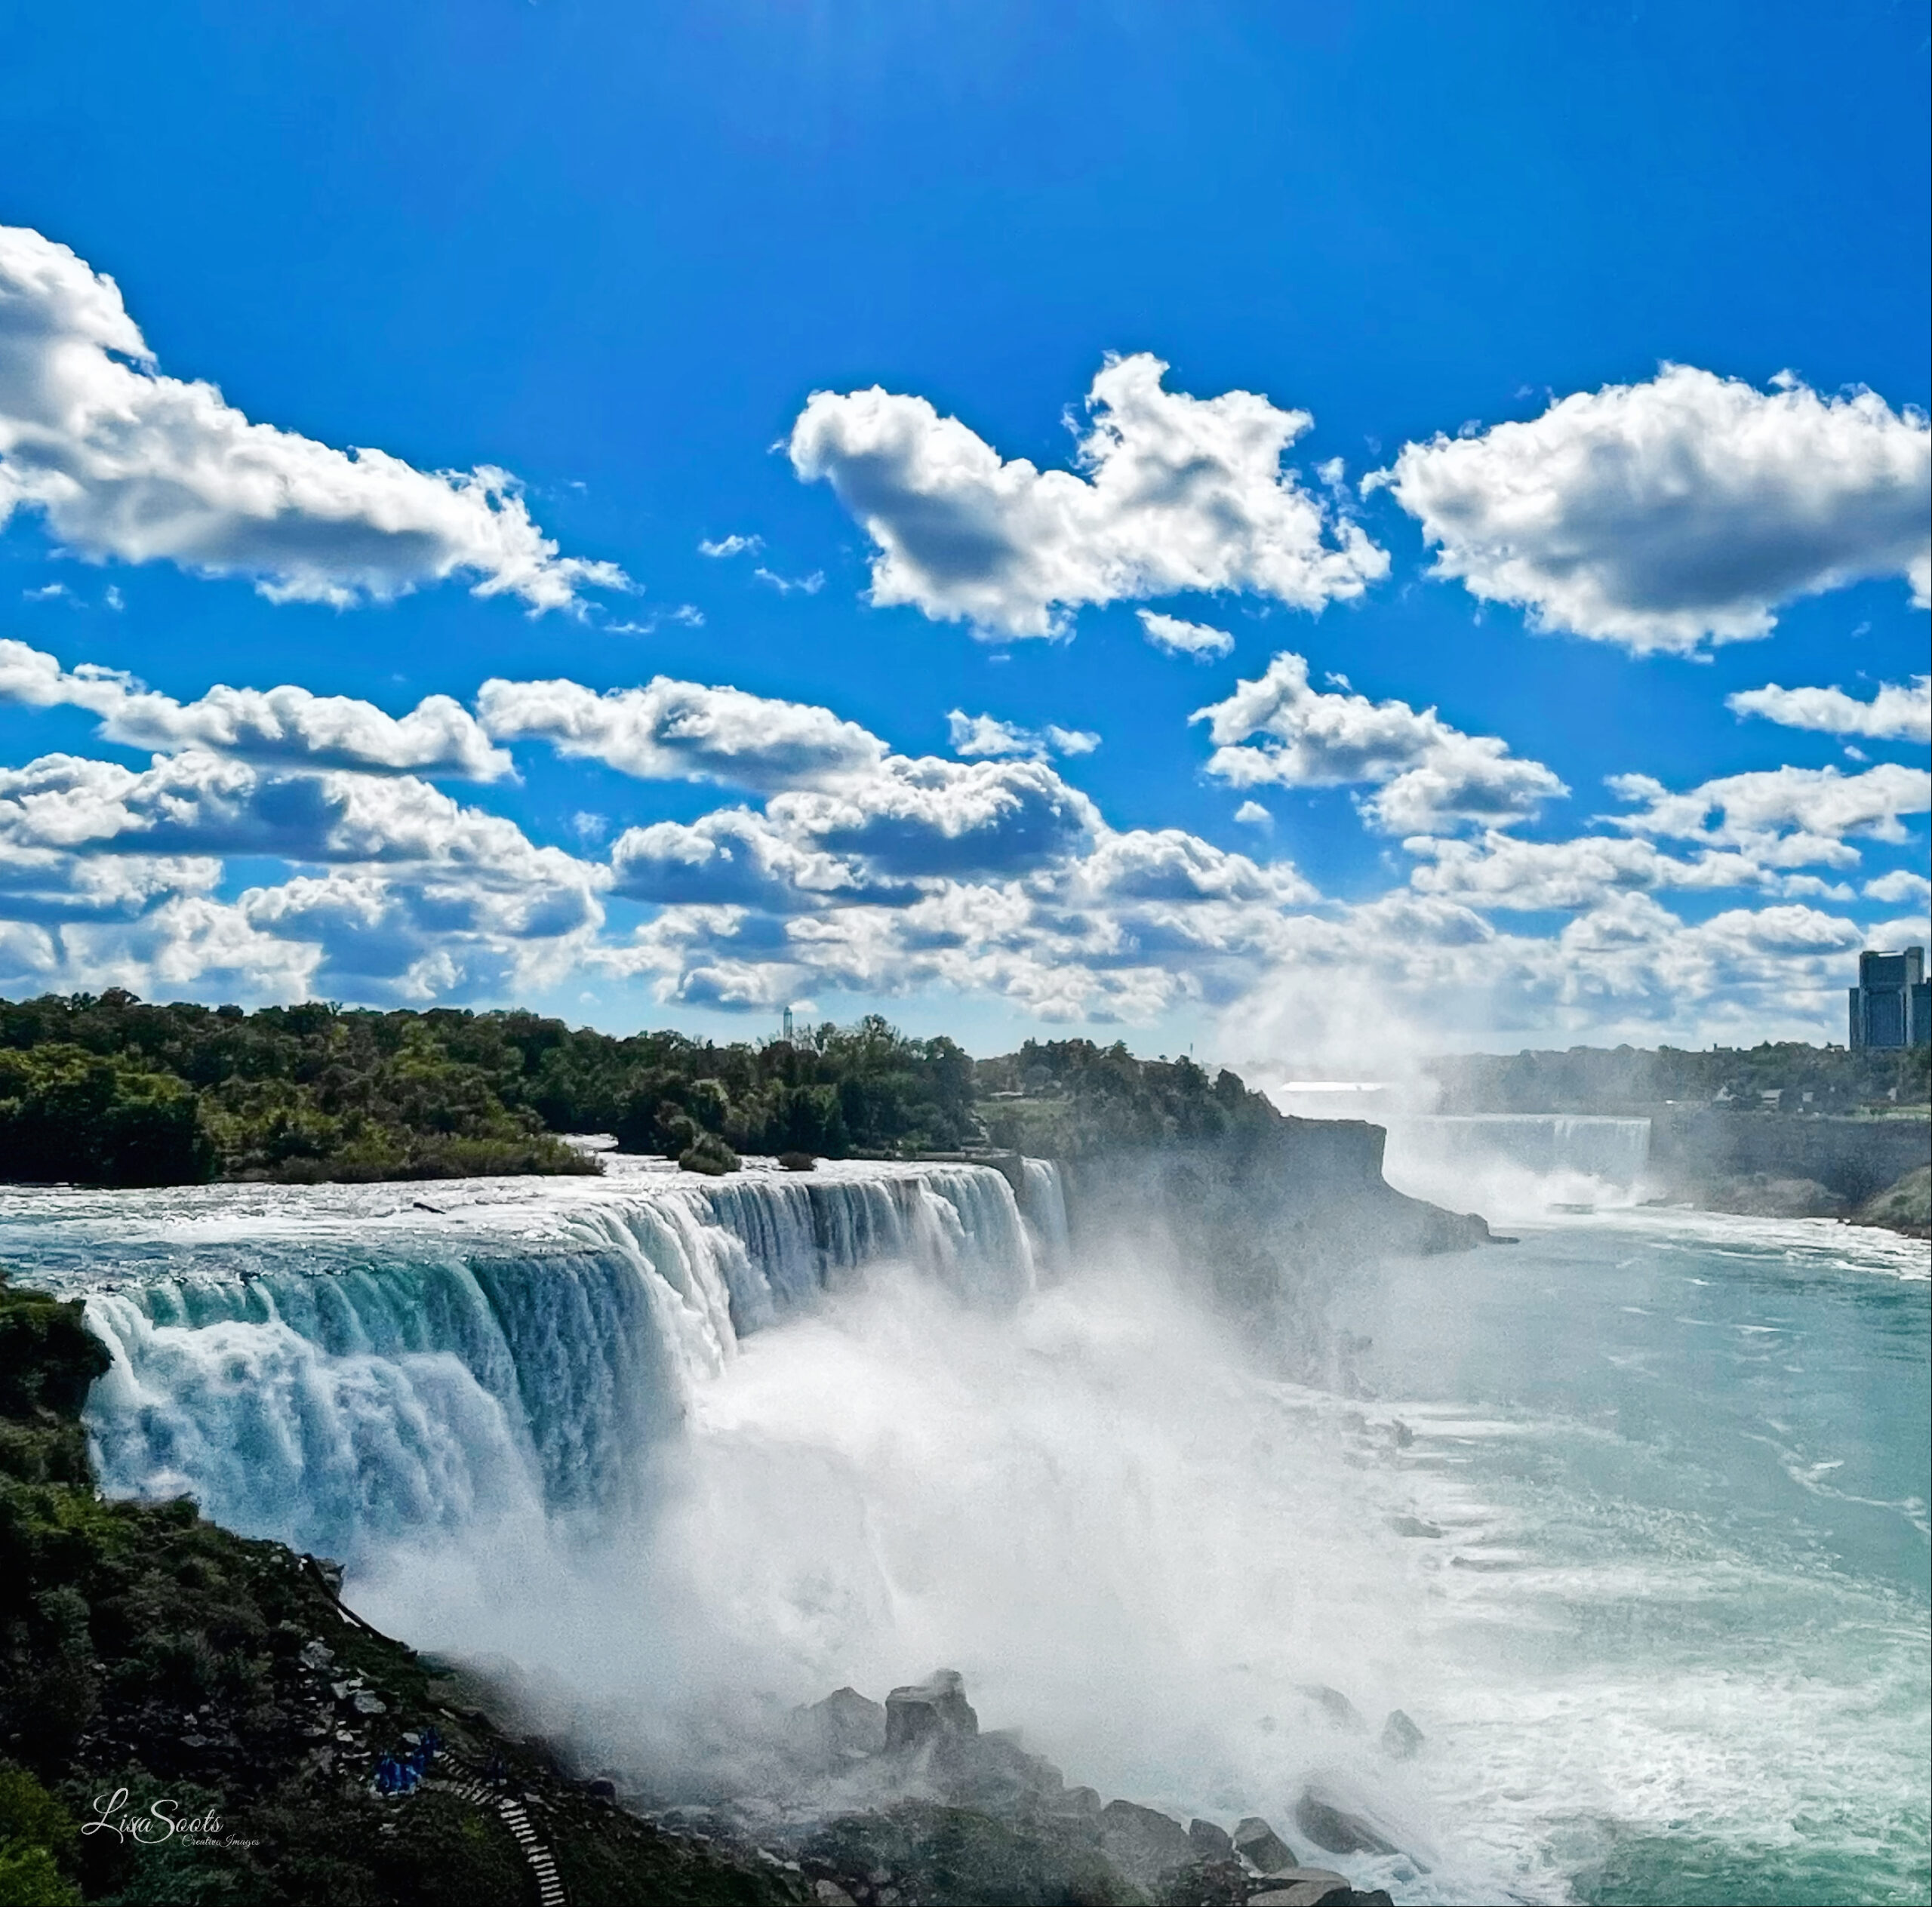 Niagara Falls – Why You Should Visit the American Side Now